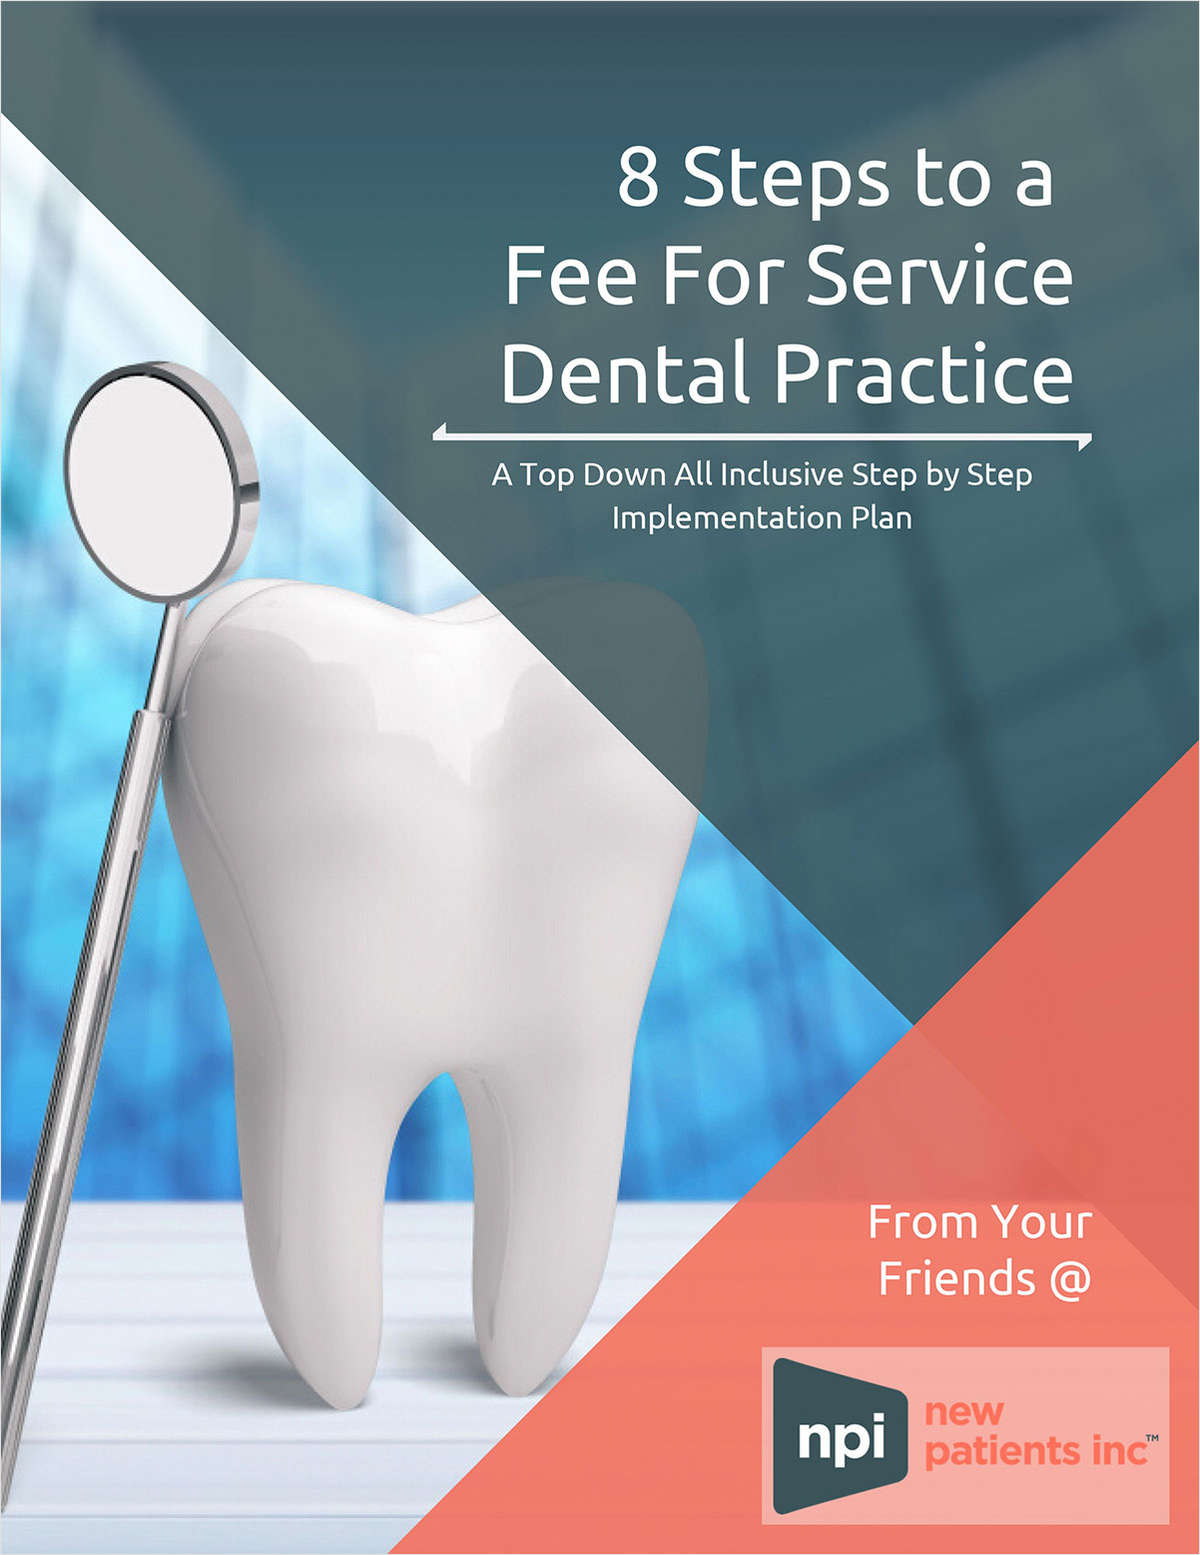 8 Steps to a Fee For Service Dental Practice